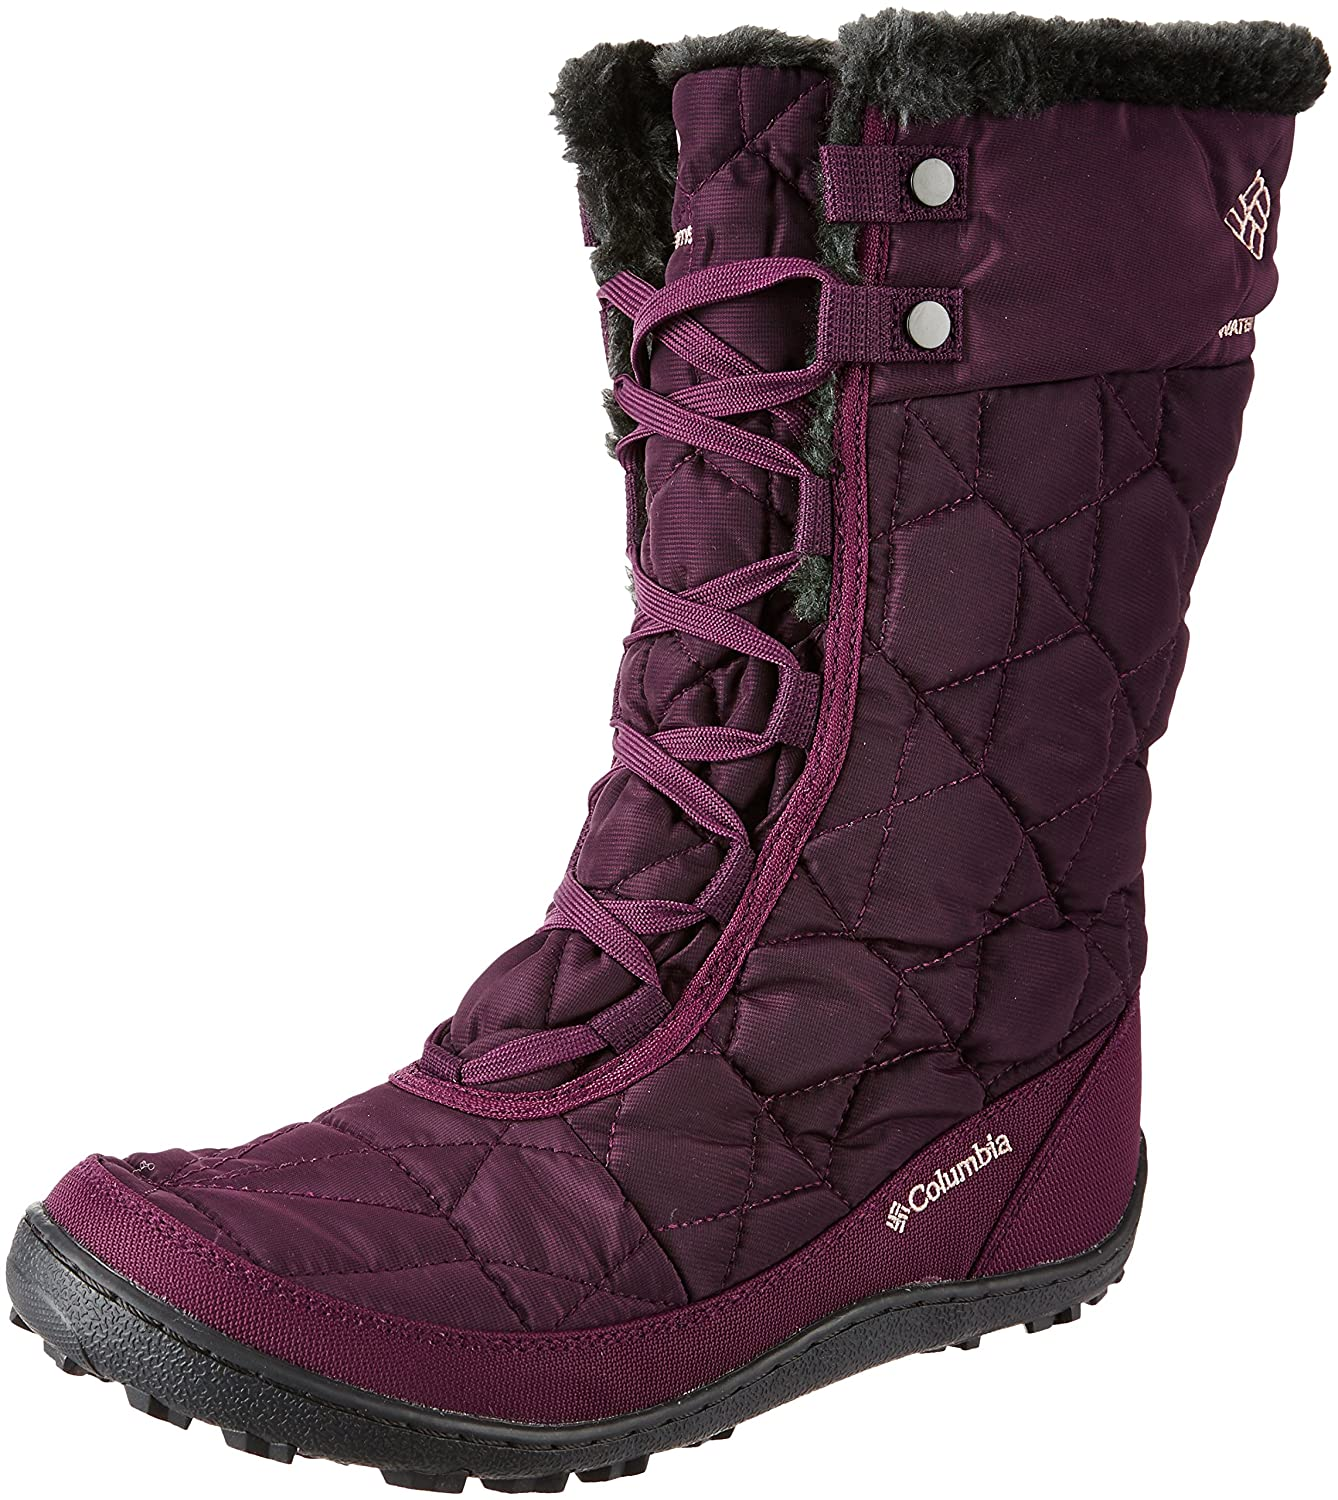 Columbia Women's Minx Mid II Omni-Heat Winter Boot B01NCNPVLD 6.5 B(M) US|Purple Dahlia, Ancient Fossil